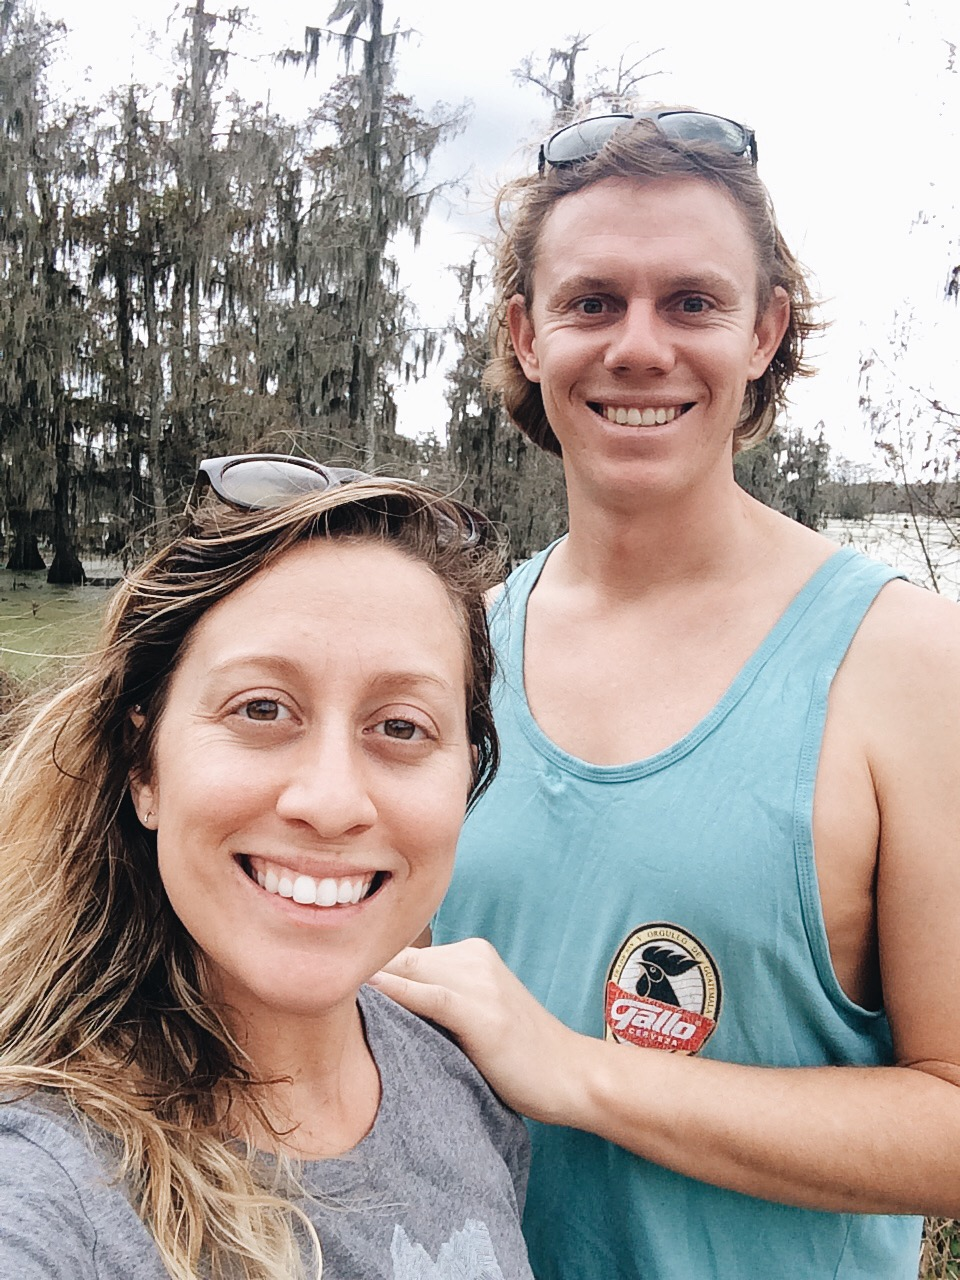 Smiles in the bayou